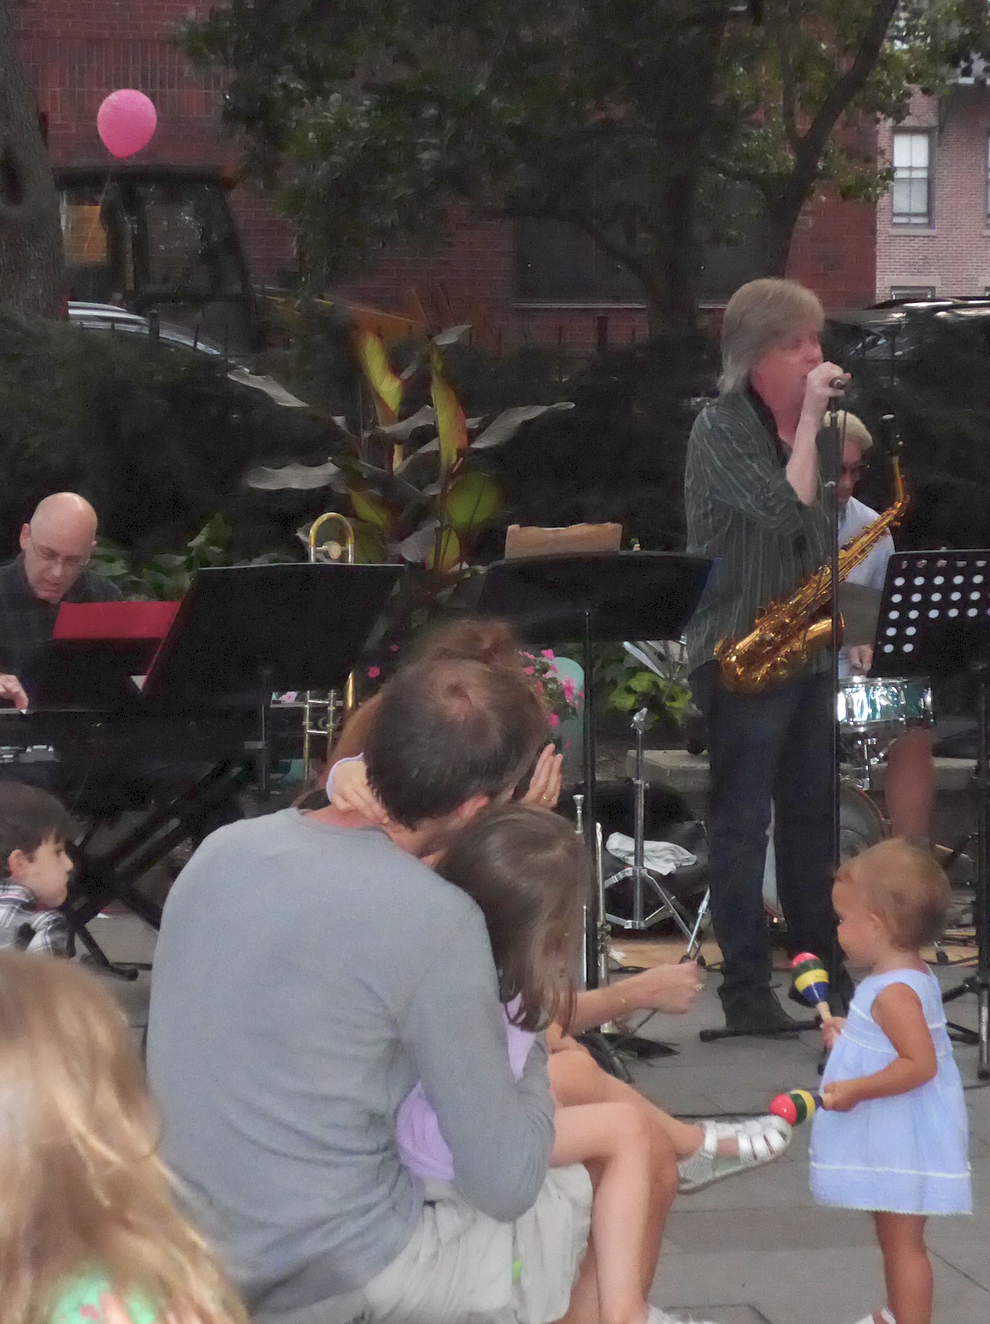 Parents and children, some with their own instruments, enjoyed the concert. Steven Higgs on keyboard in the back.